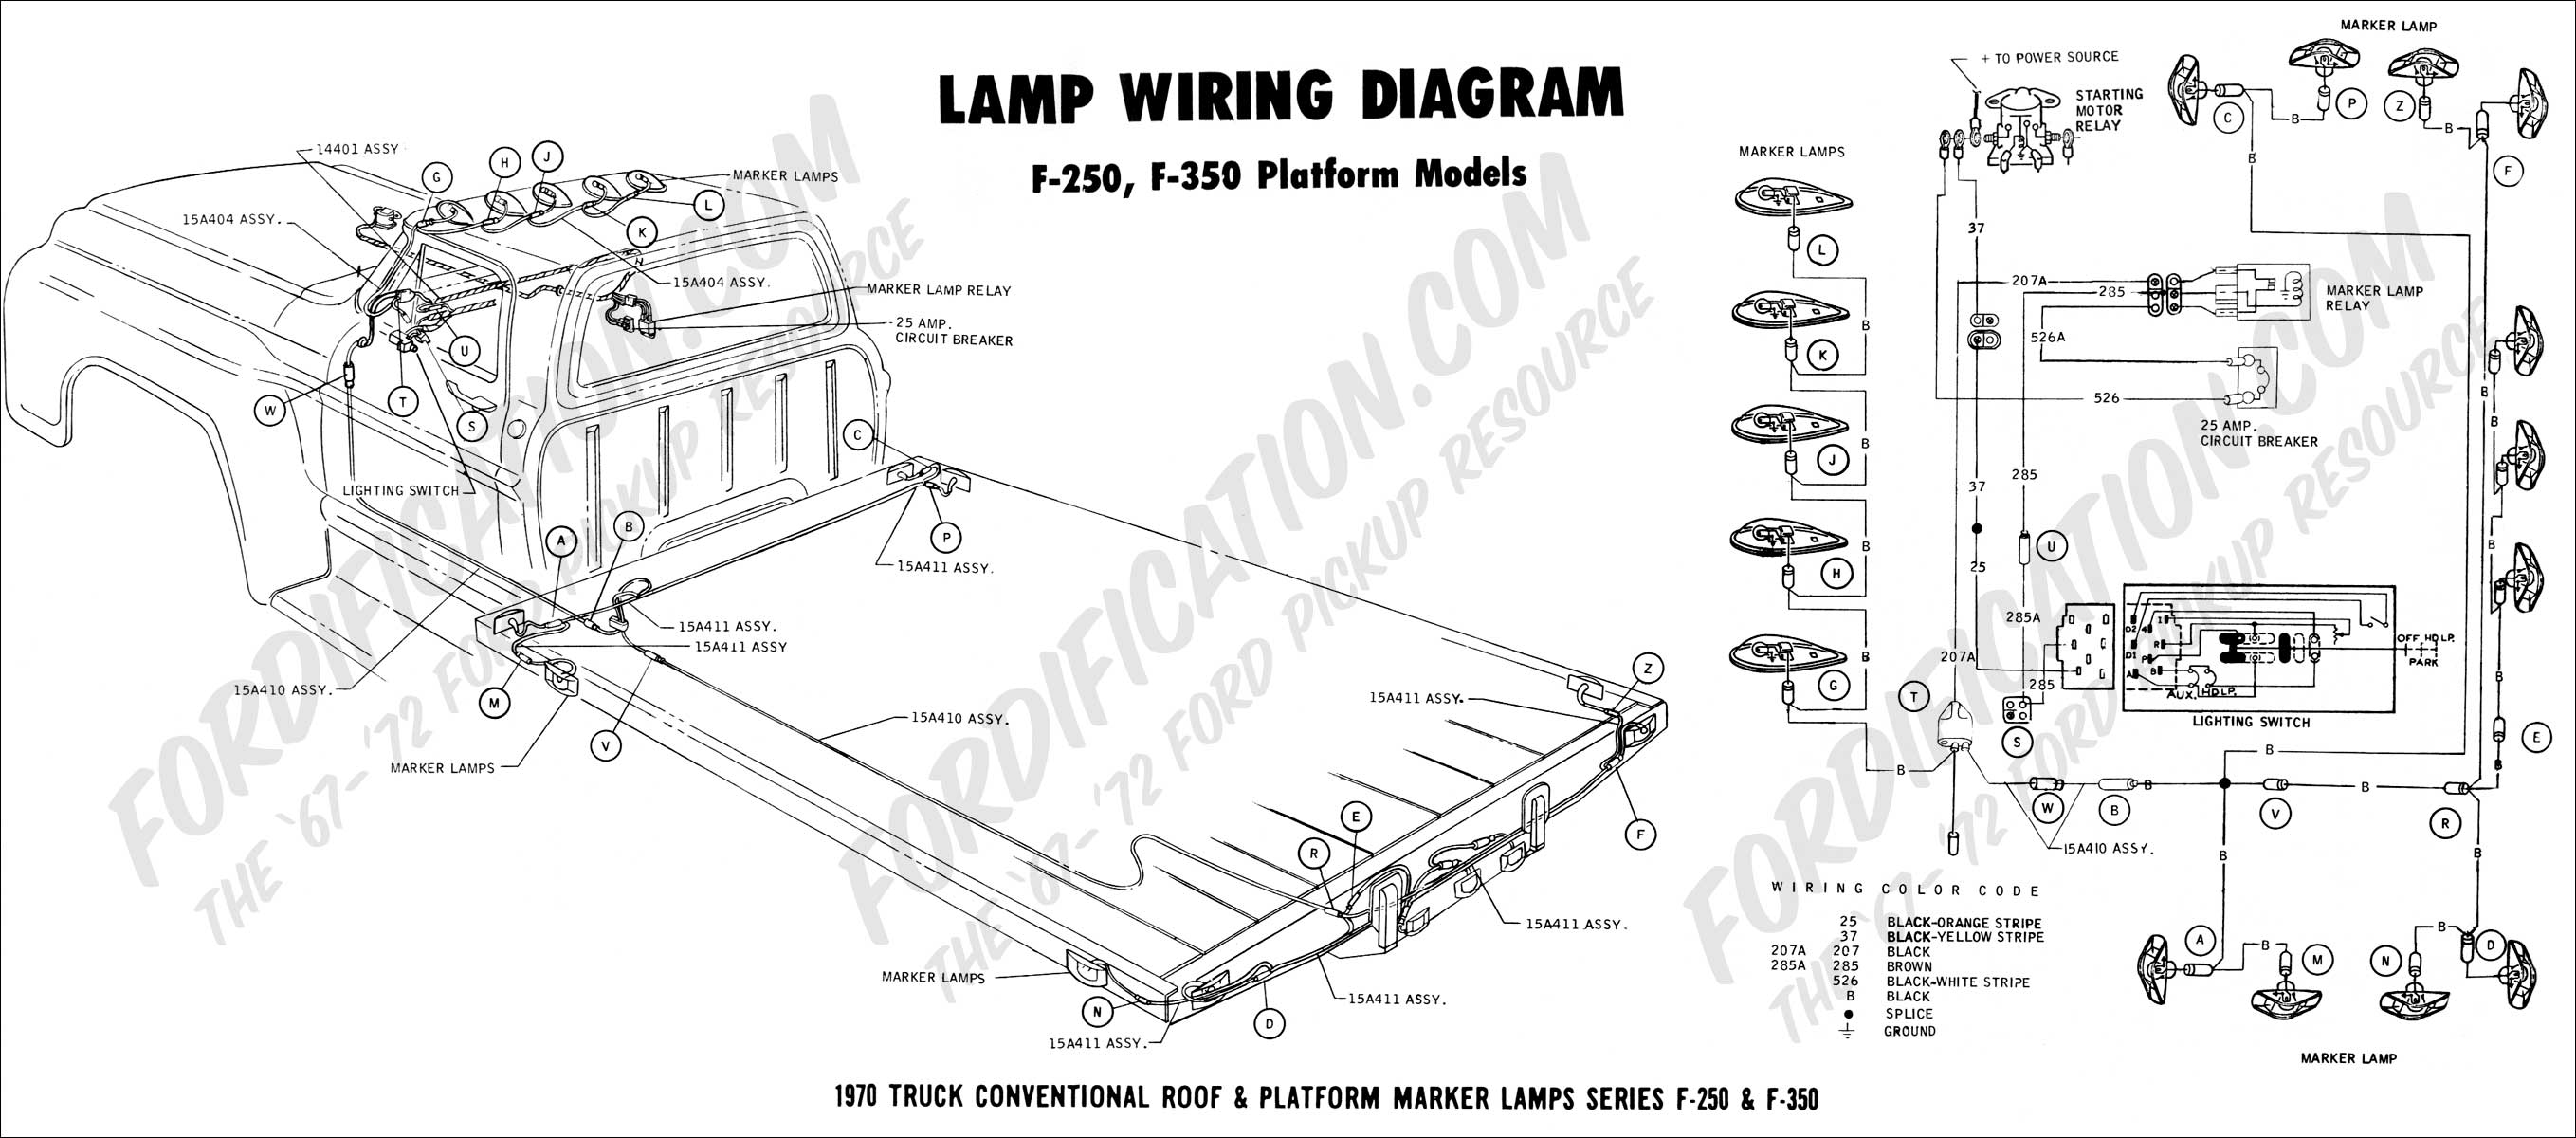 2007 F750 Wiring Diagram Auto Electrical Automotive Diagrams Archives Page 185 Of 301